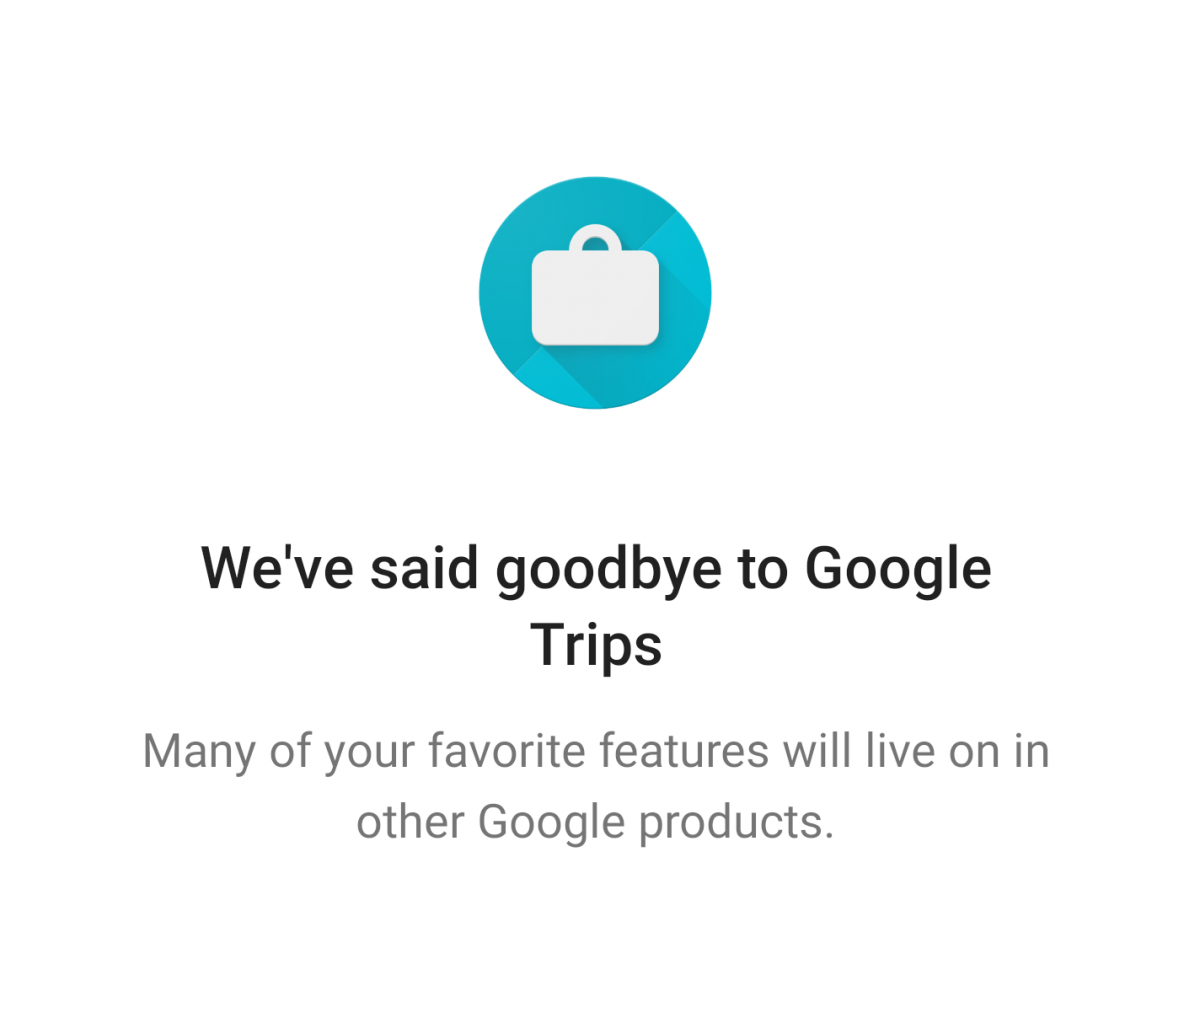 Google Trips mobile app will be killed off on August 5th